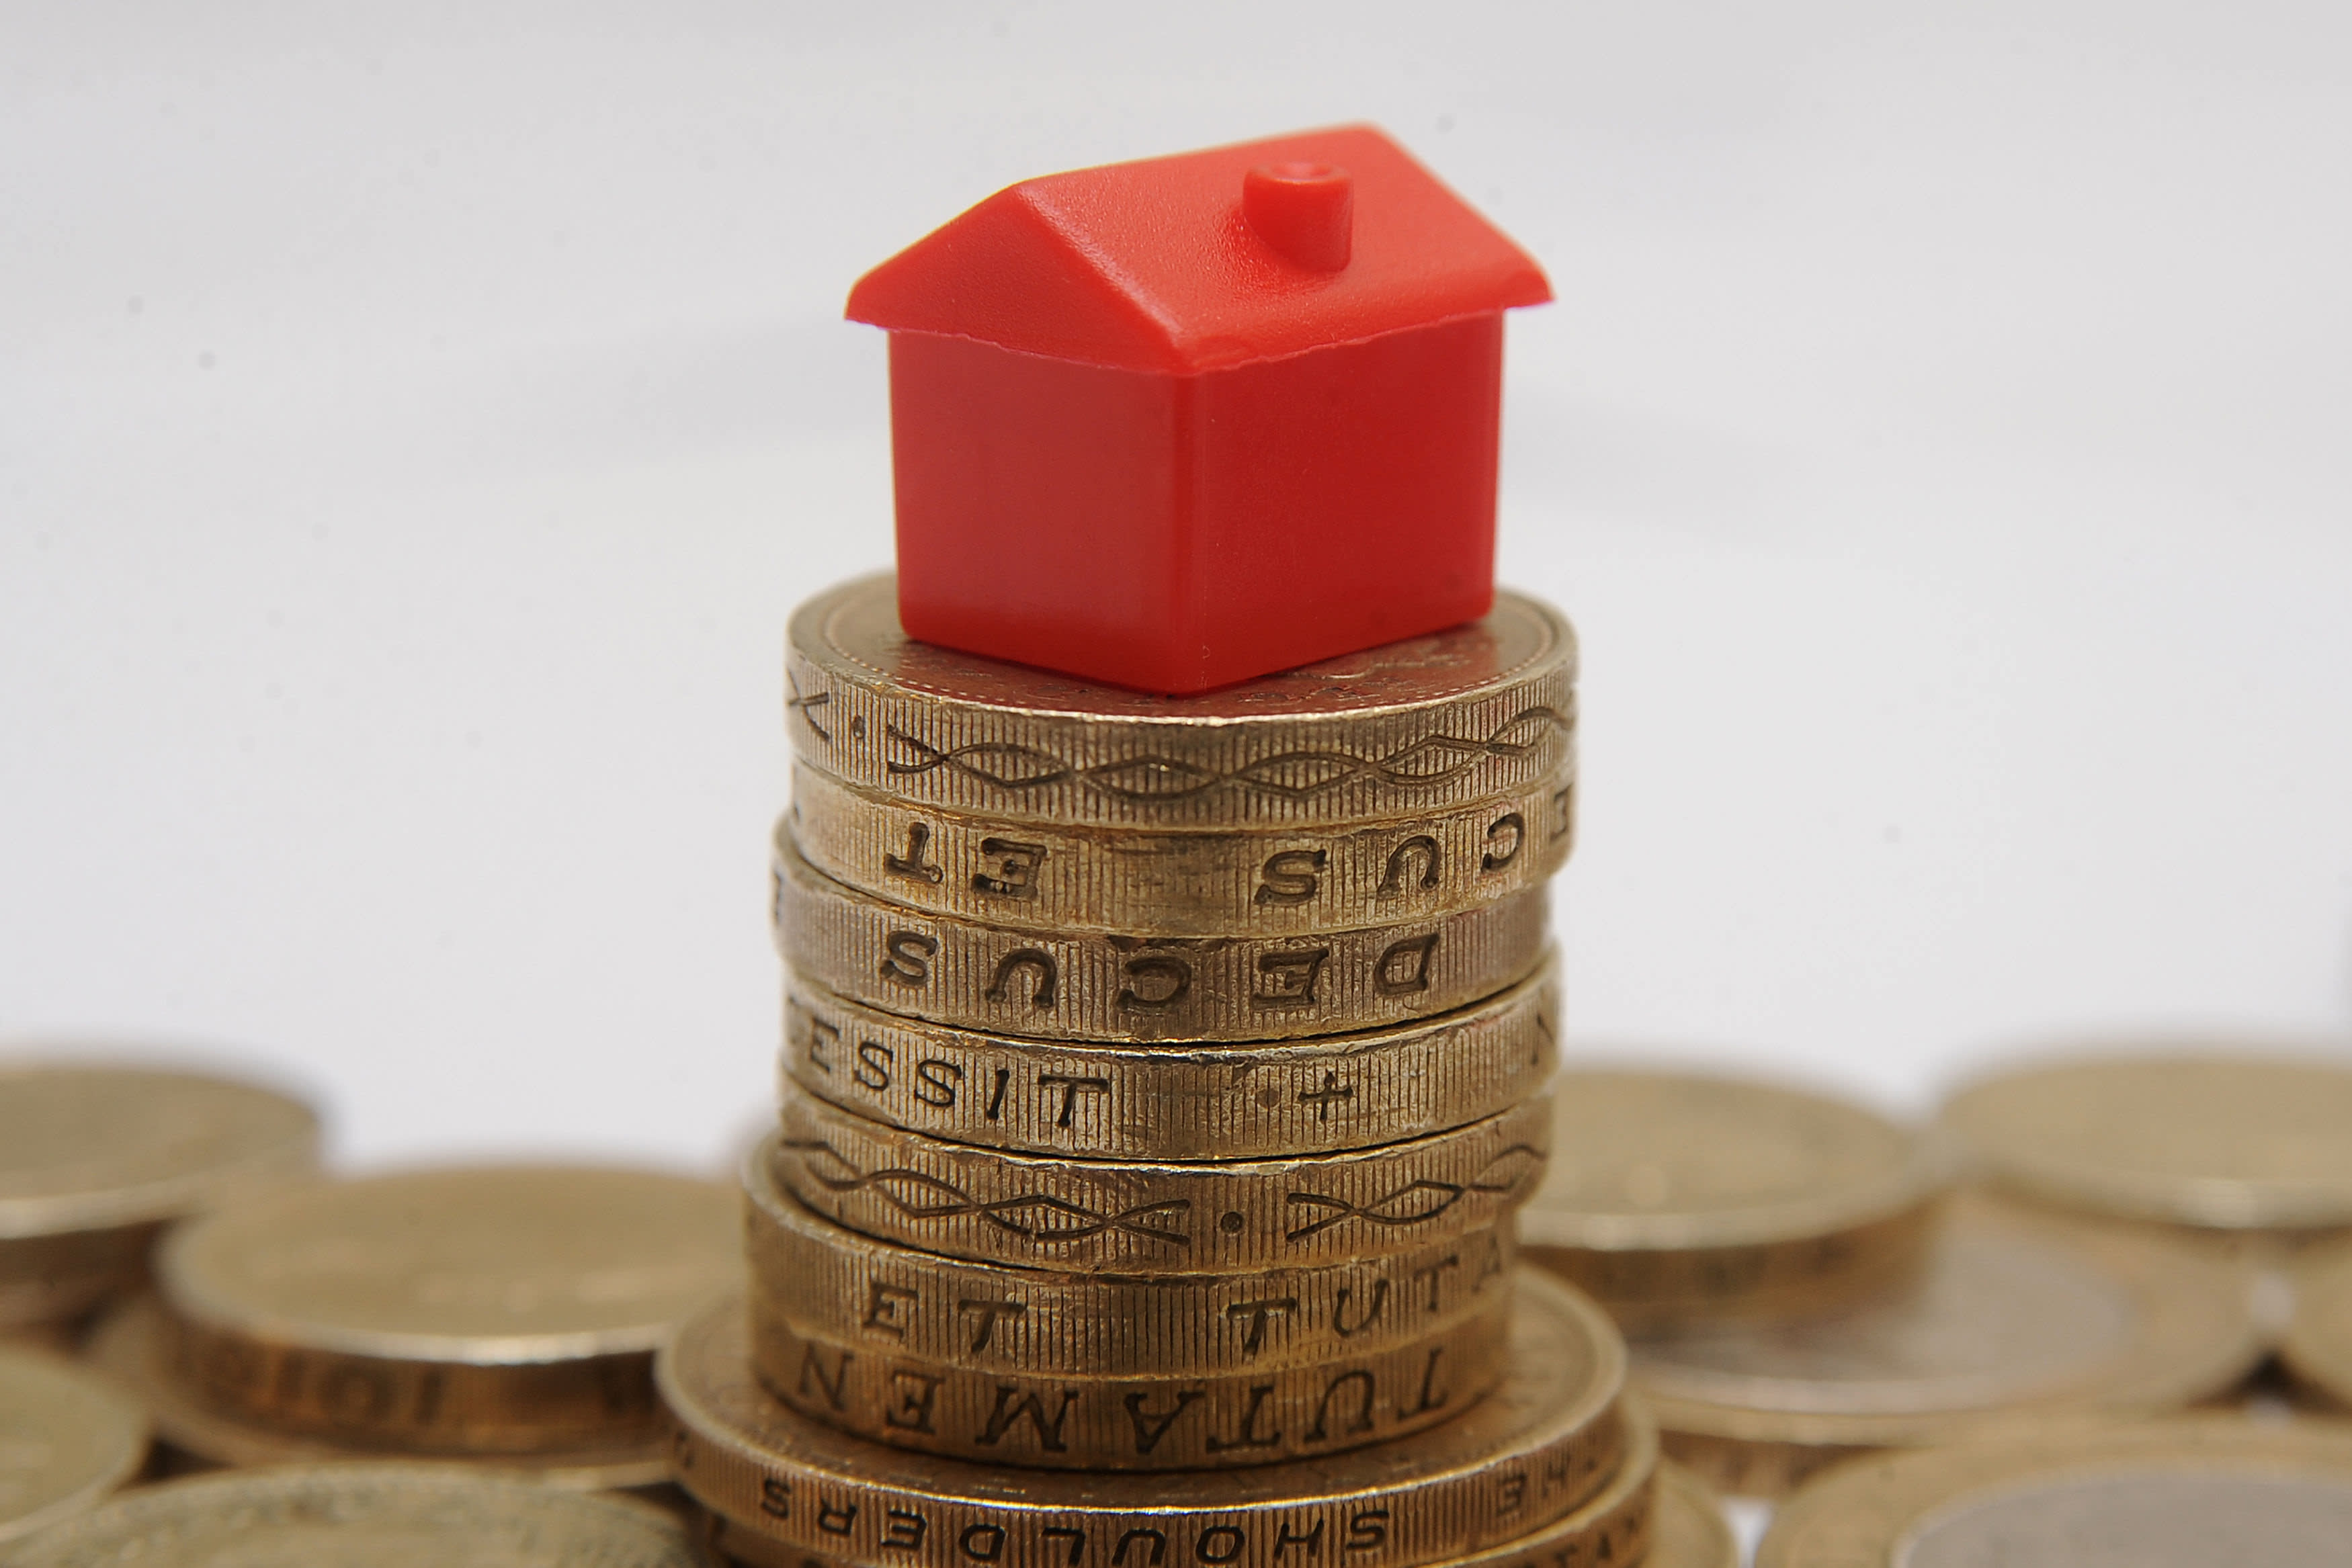 Short-term lender to pay legal and surveyor costs